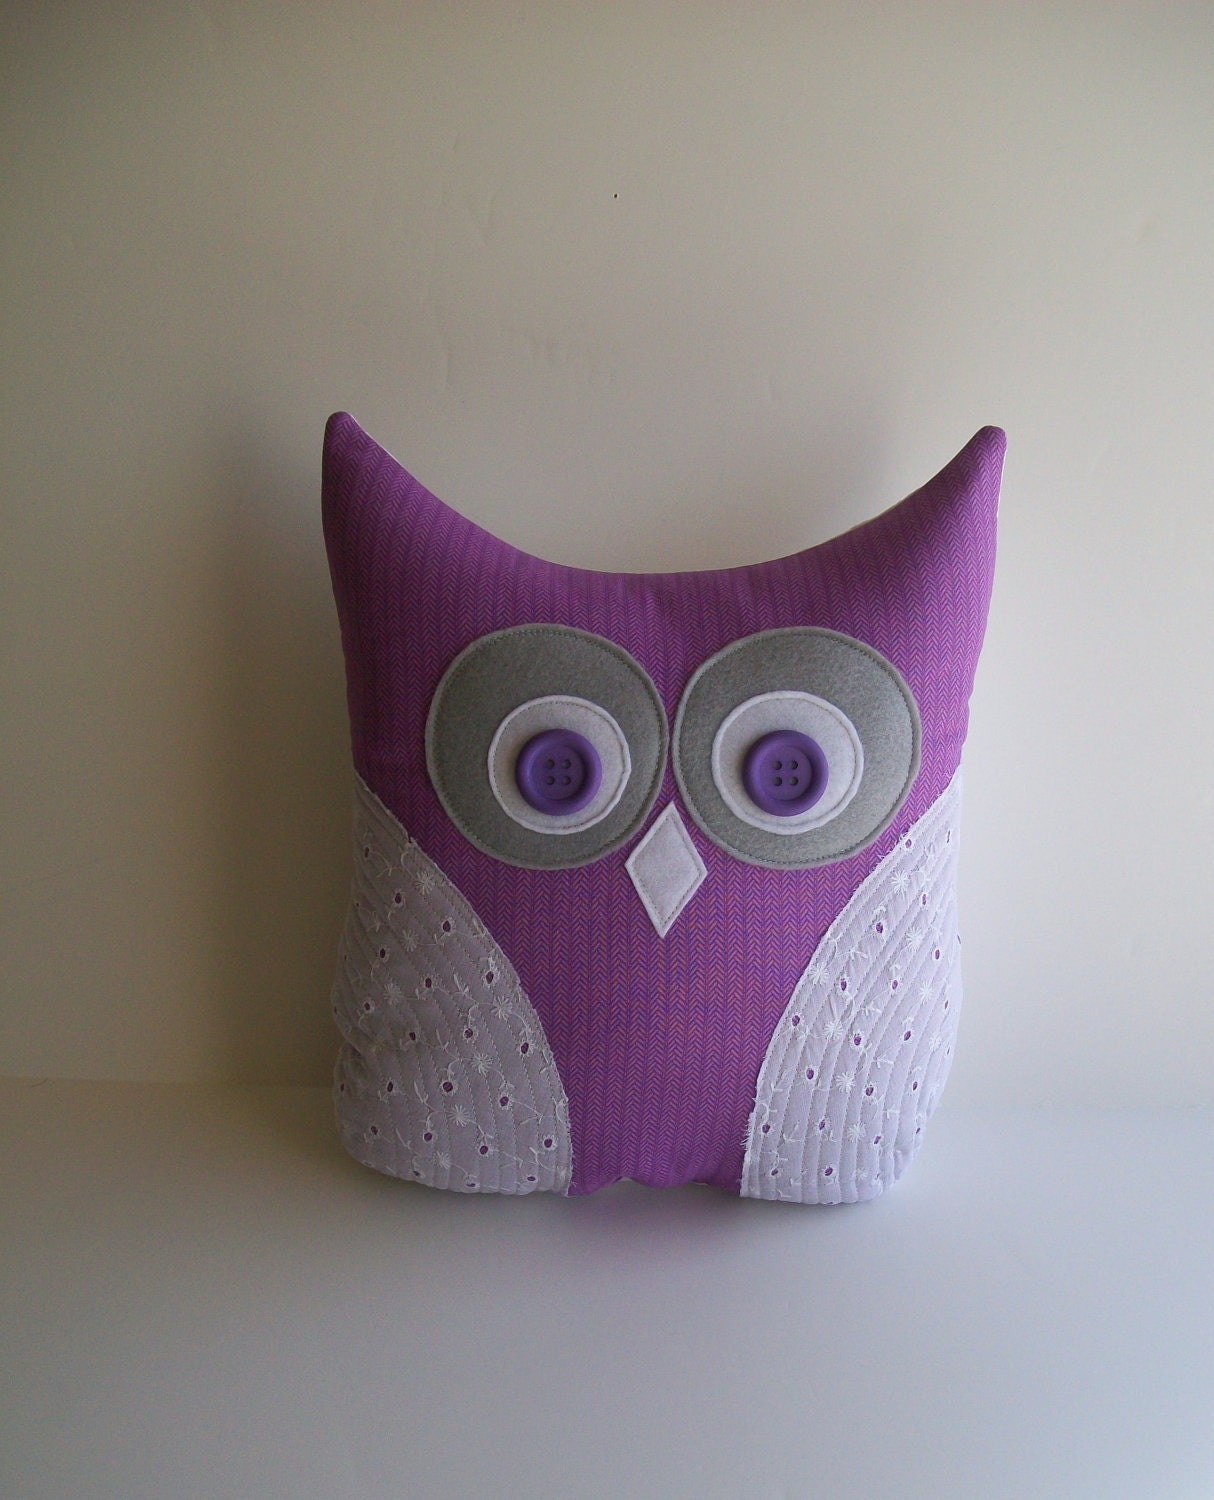 decorative owl pillow, grey, purple, white eyelet, spring, easter, nursery, child's room decor, mother's day gift under 25  READY TO SHIP